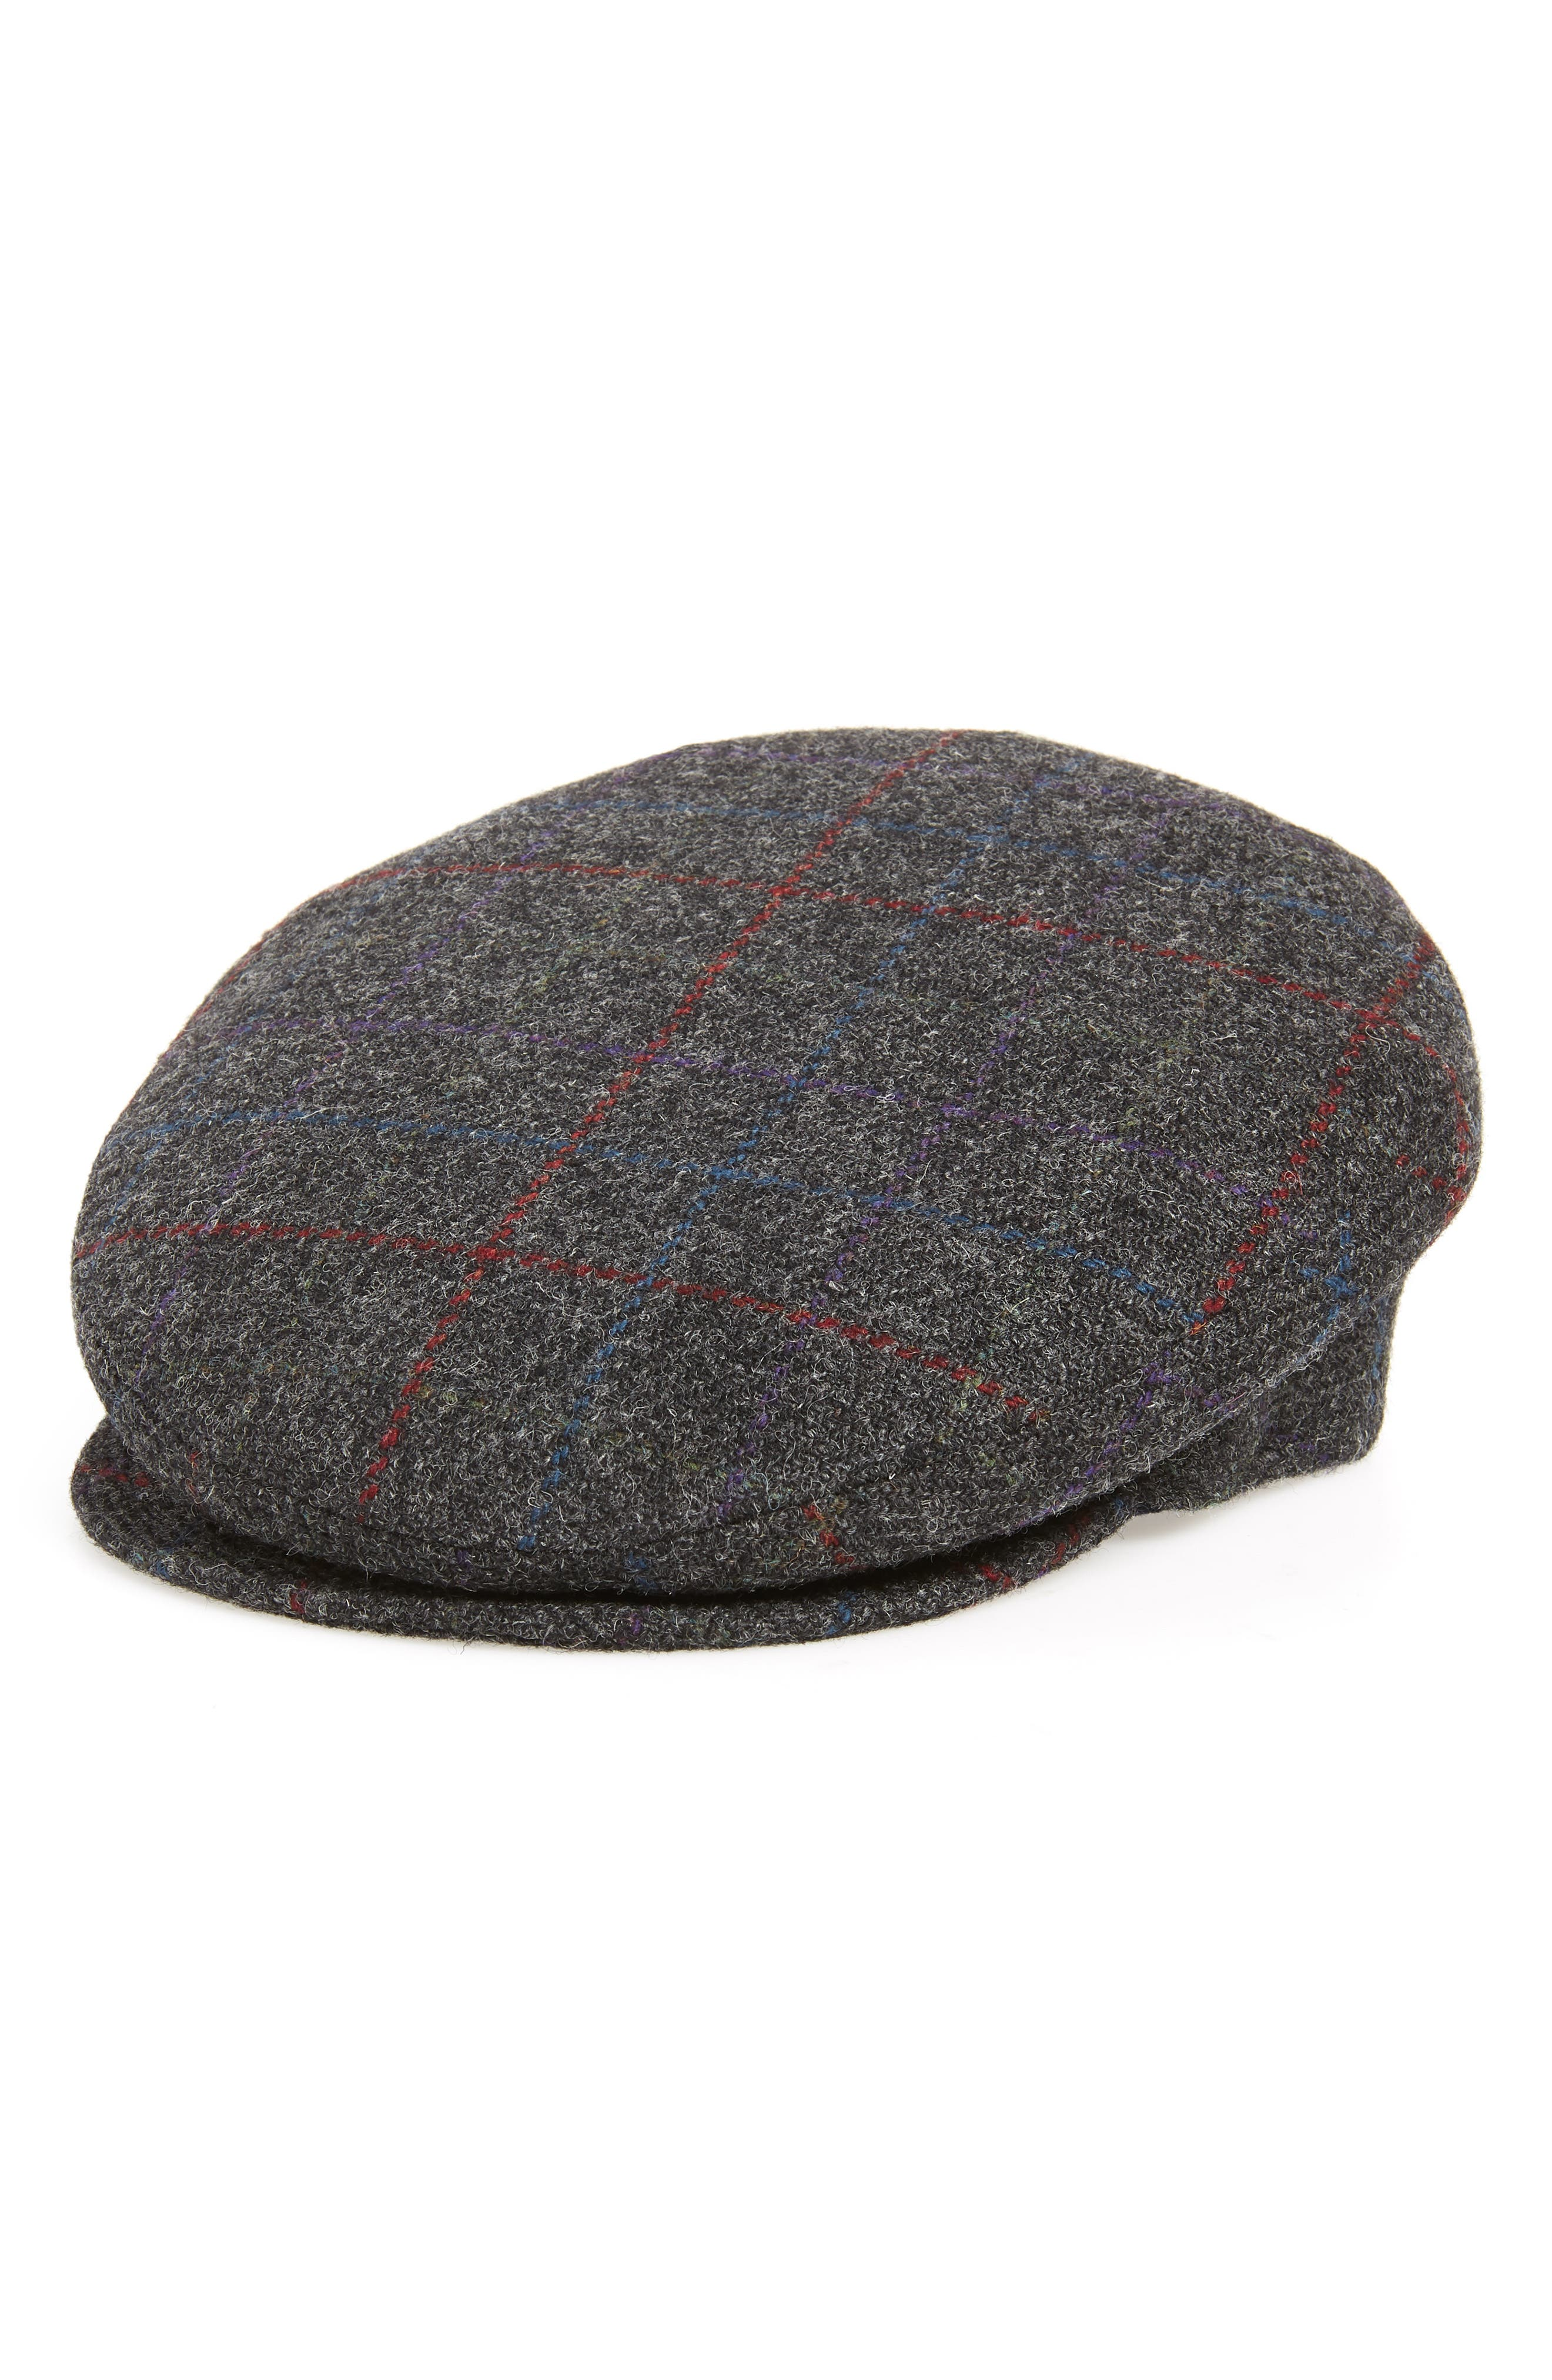 Lord Windowpane Wool Driving Cap,                             Main thumbnail 1, color,                             CHARCOAL